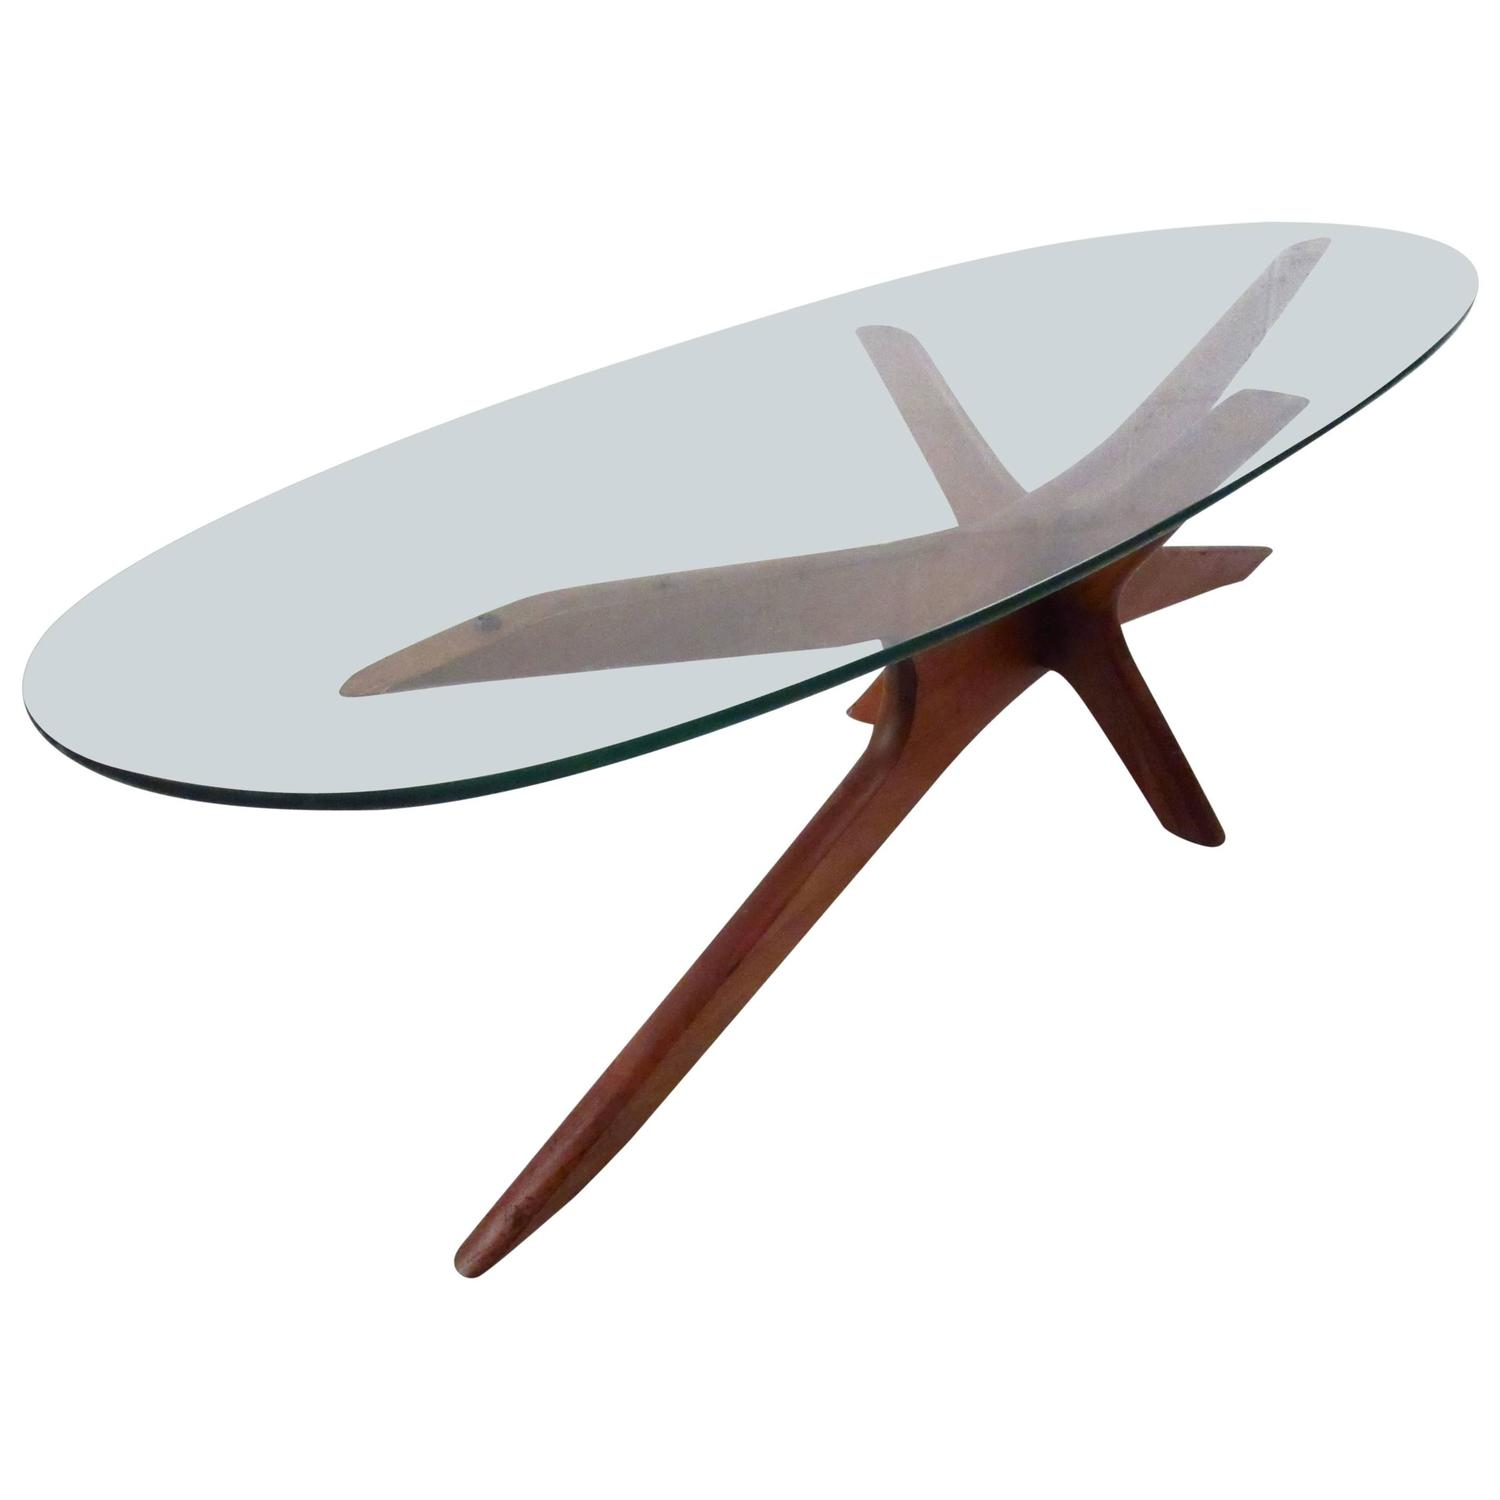 Adrian pearsall long cocktail table at 1stdibs for Long coffee table